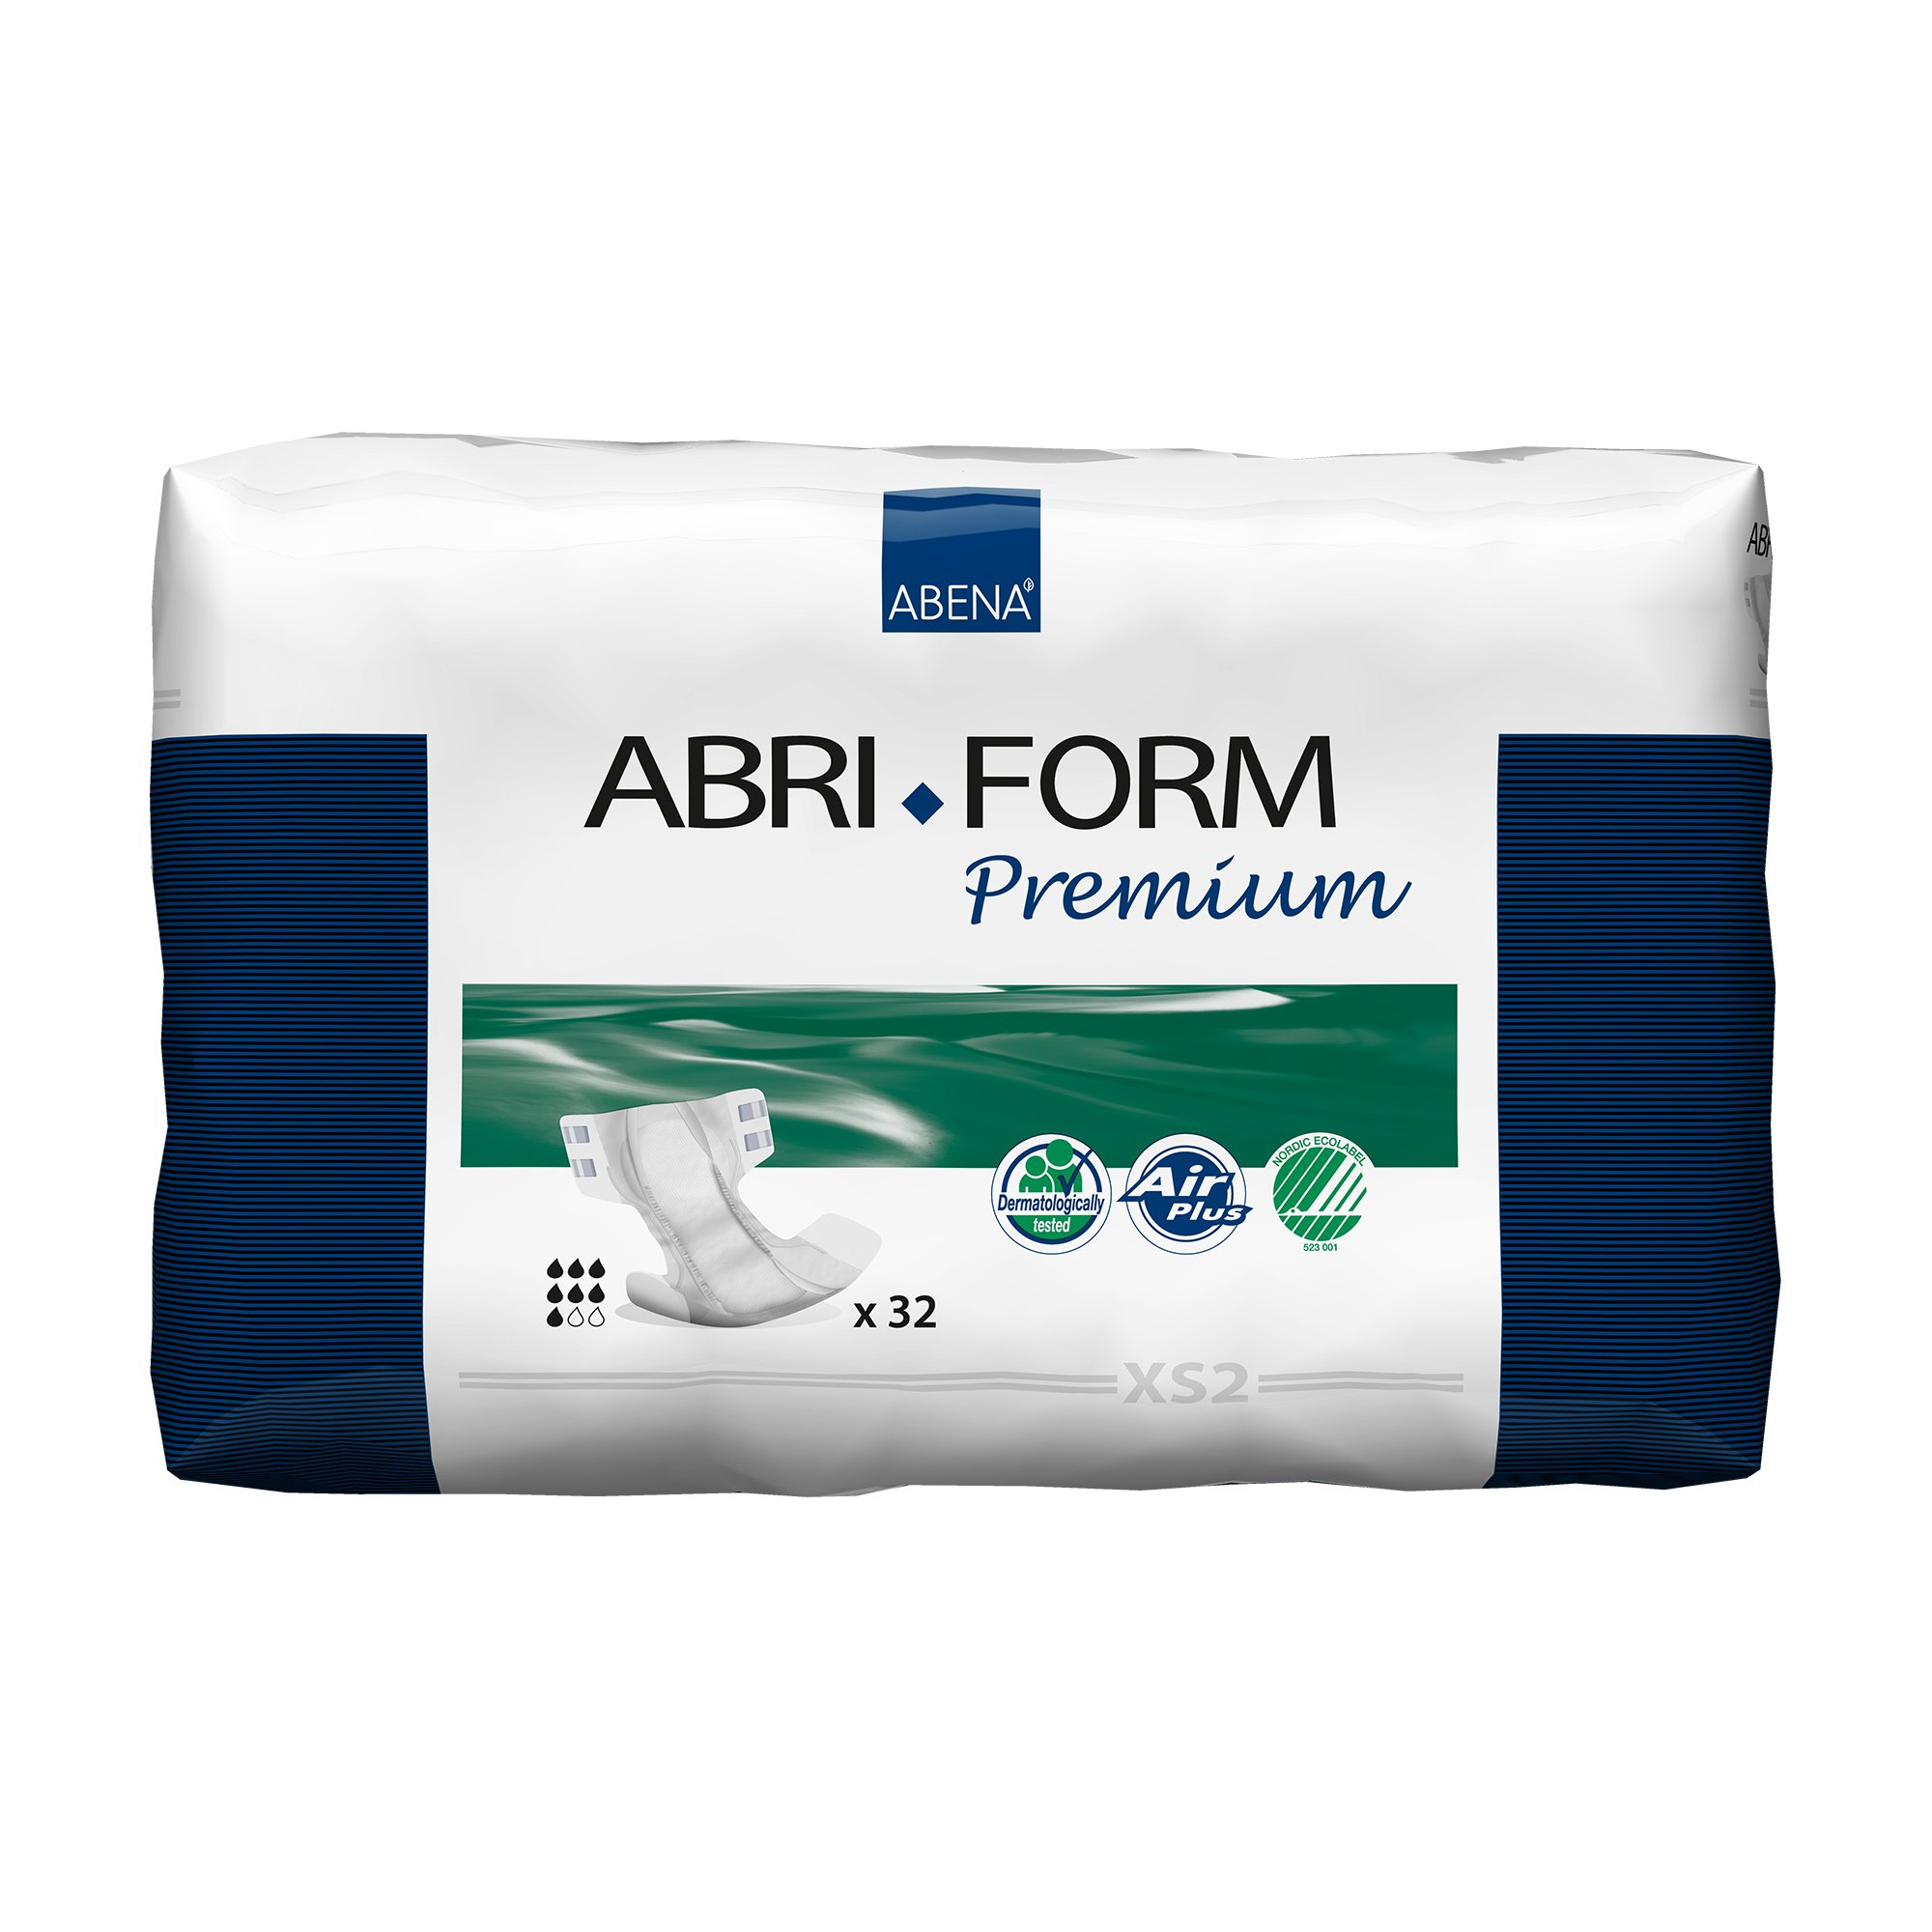 """Abri-Form Premium XS2 Unisex Adult Disposable Diaper with tabs, Heavy Absorbency, 43054, X-Small (20-24"""") - Case of 128 (4 Bags)"""